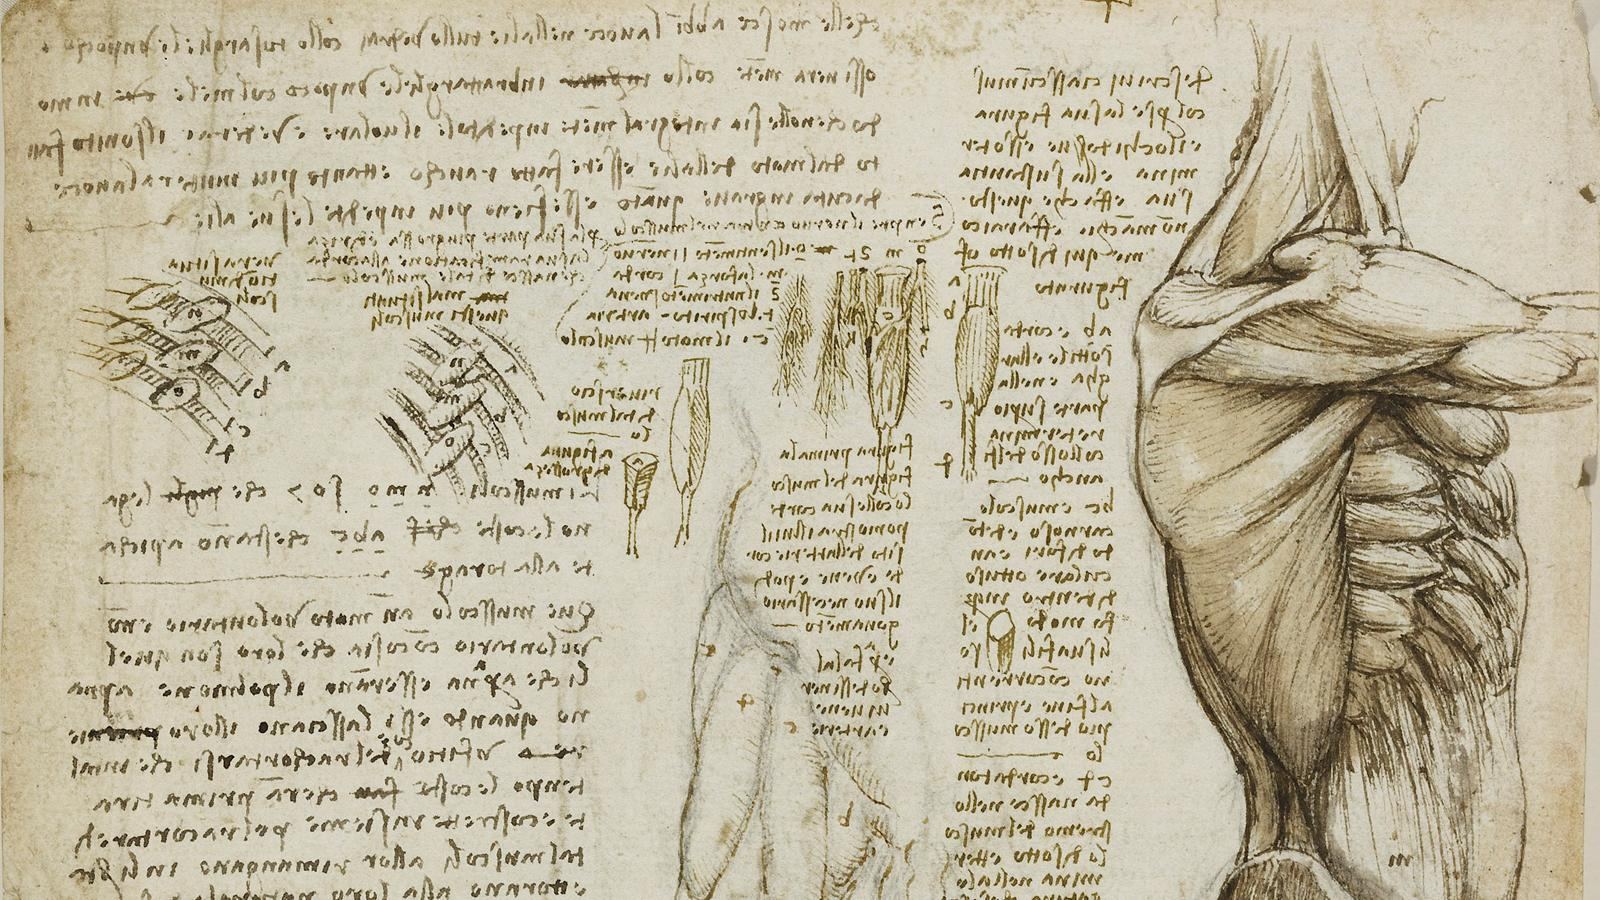 19 Drawings That Prove Leonardo Da Vinci Was Way Ahead Of His Time